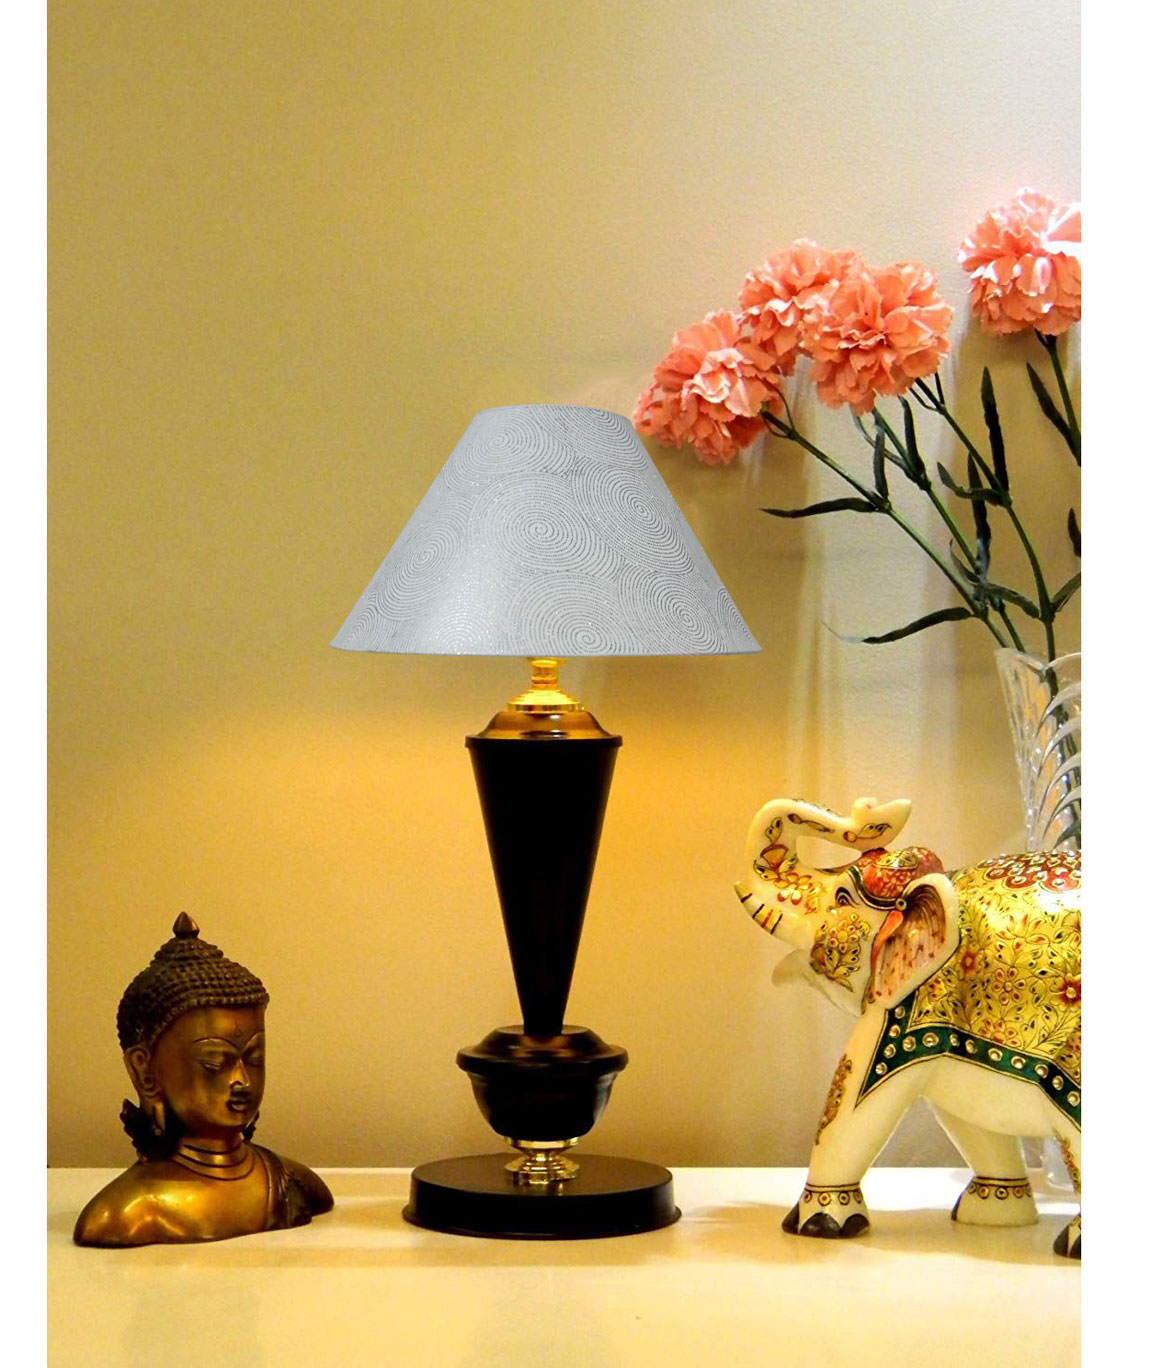 RDC Black with Golden Base Table Lamp with 10 Inches Round White with Silver Polka Dots Designer Lamp Shade